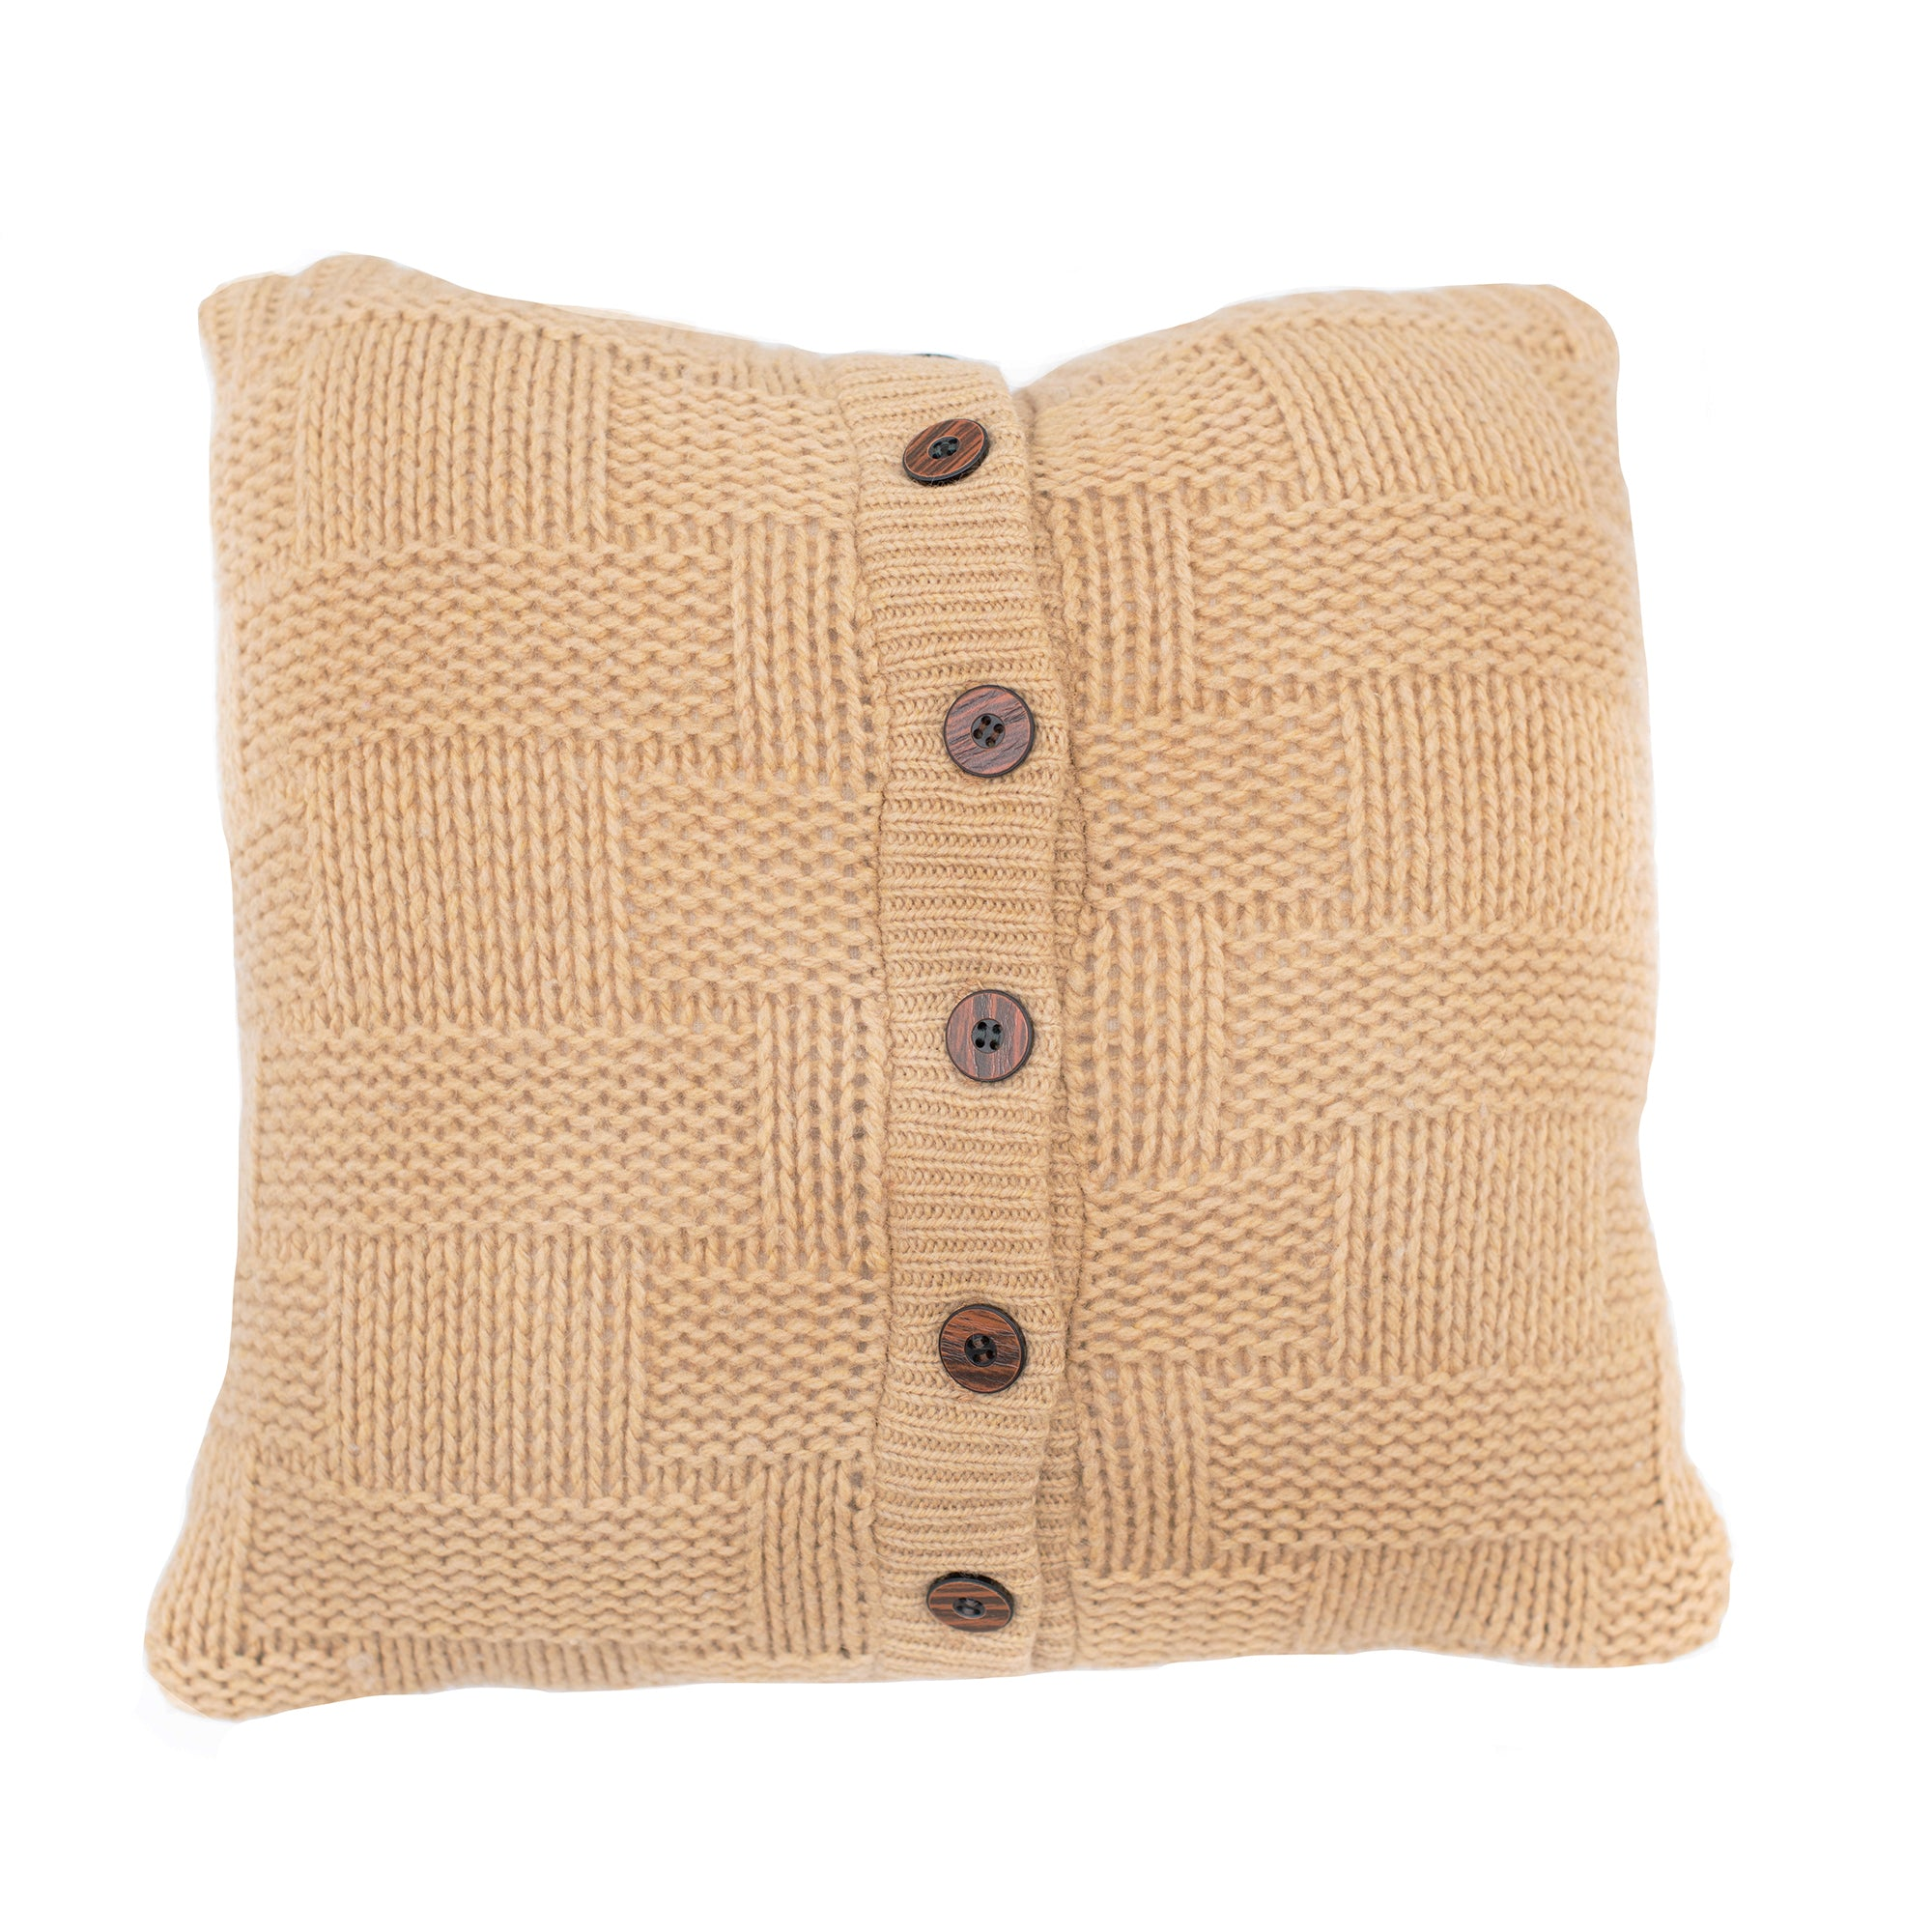 16x16 Camel Cable Knit Pillow cover